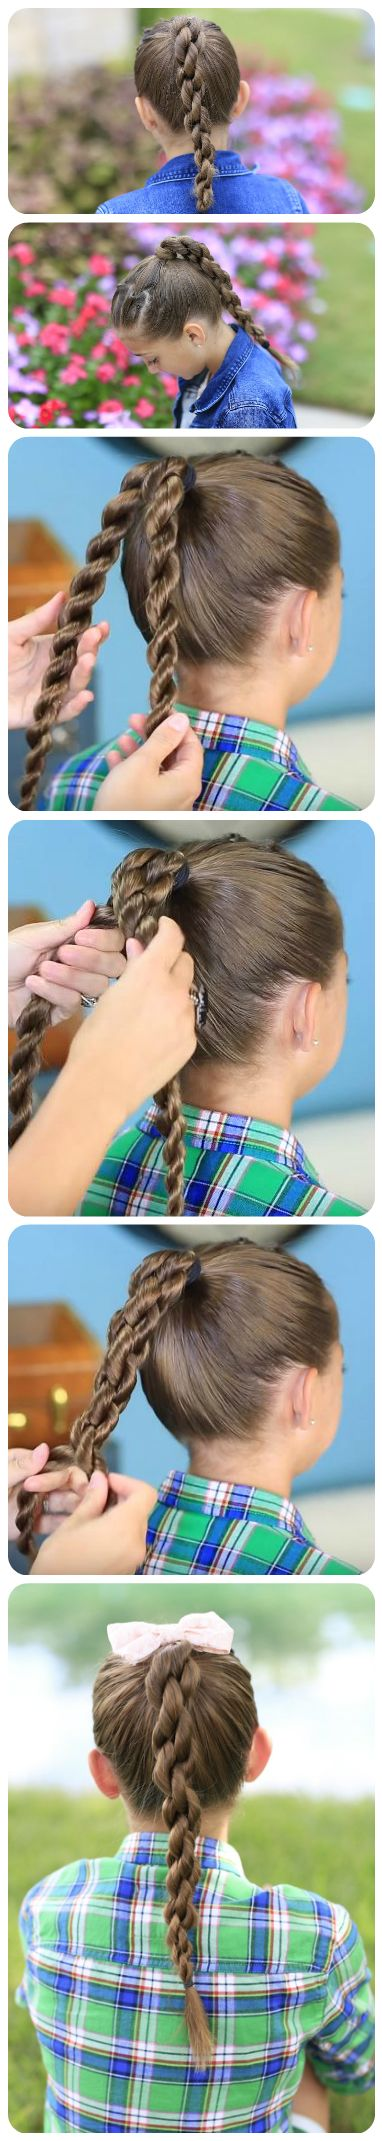 Perfect Chain Link Braid. the tip or trick for this braid is :  (individual over left --> the  roped braid over right ,versa versa )  means: If you doing the individual rope/twist to the right then ov (Basketball Hairstyles)